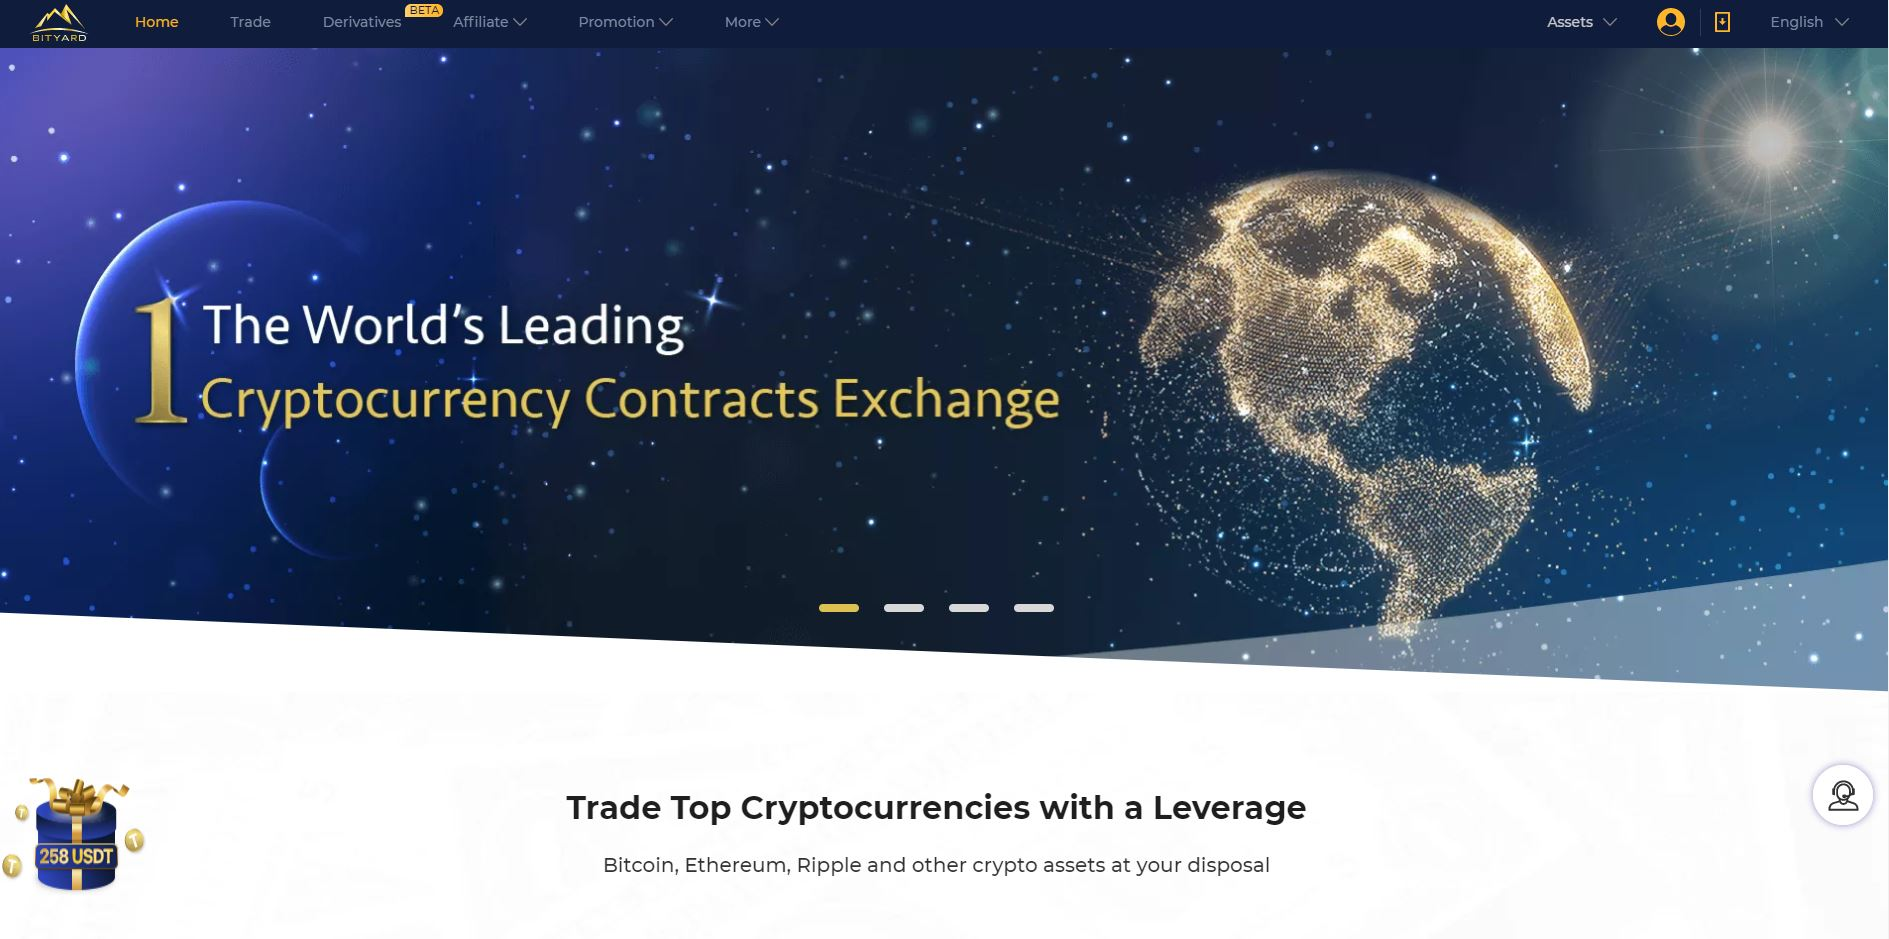 Bityard: The World's Leading Cryptocurrency Contracts Exchange. Hasta 258 USDT en bonos. Aprovecha.